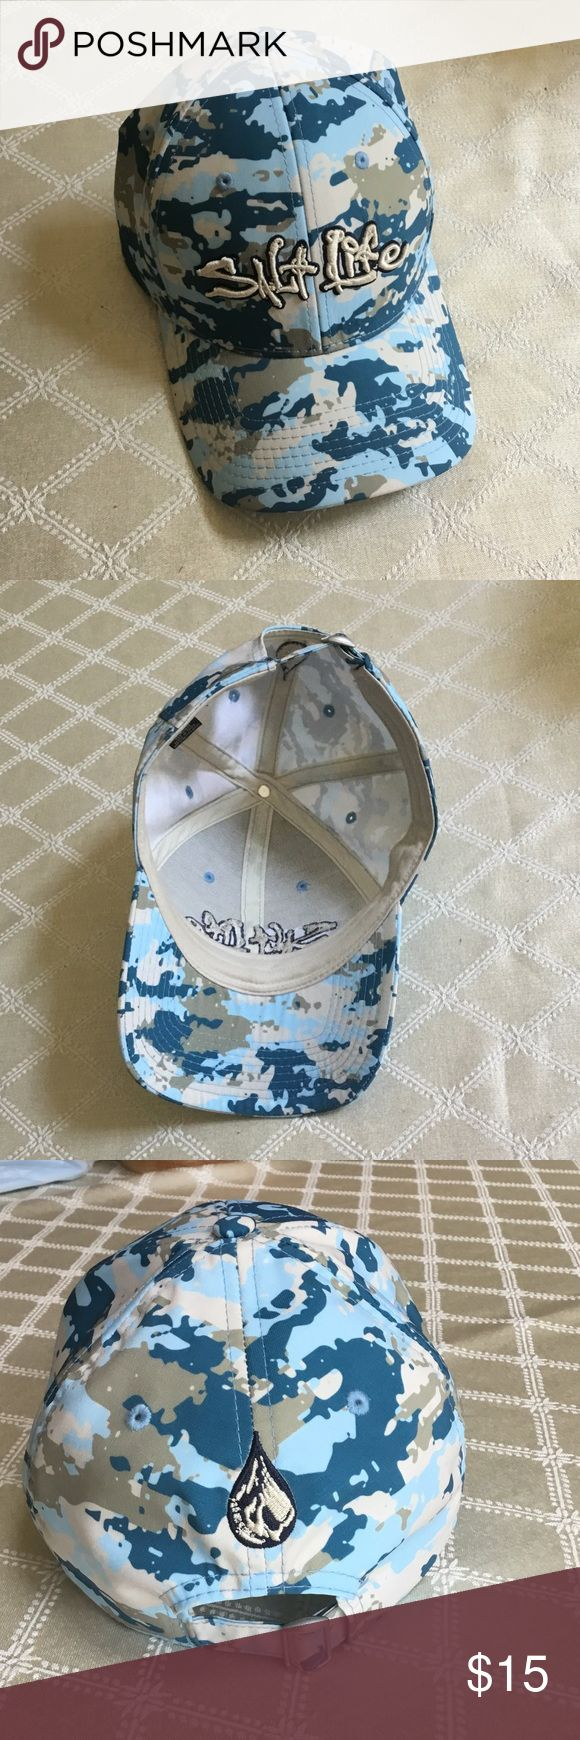 Awesome Salt life adjustable hat, his or hers Adjustable Salt Life hat with awesome camouflage colors of blues and tans Salt life Accessories Hats